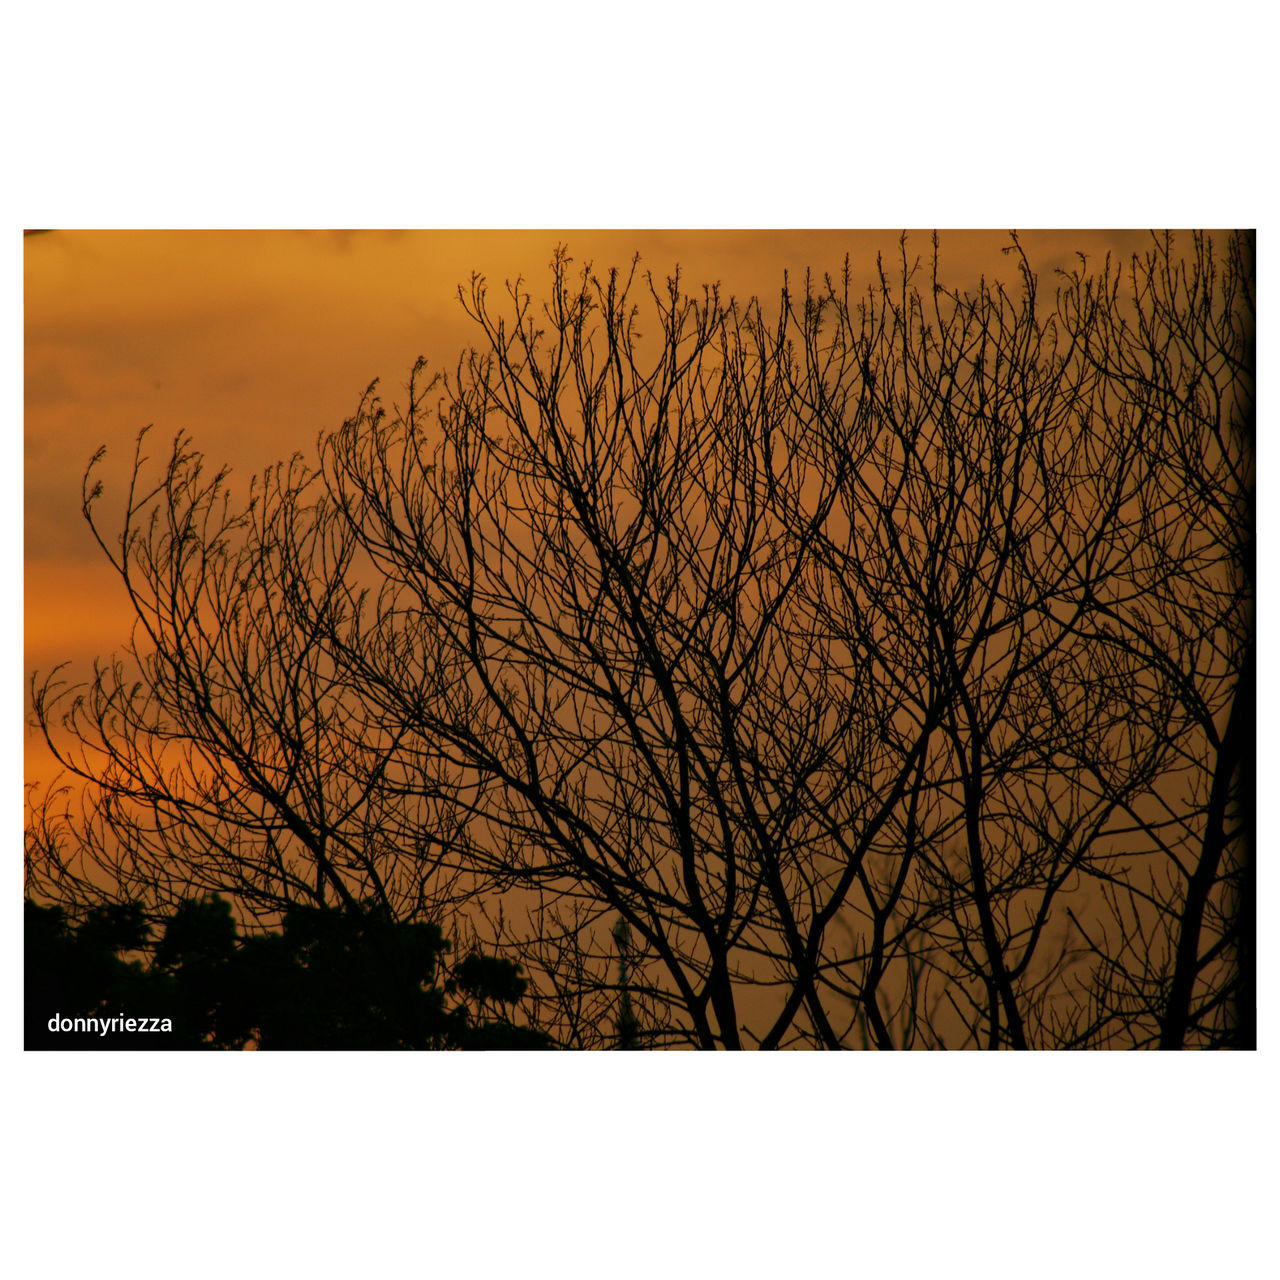 First post First Eyeem Photo Sonyphotography Alpha700 Tamronlens 70-300mm Sunset_collection Sunset Sunsetporn sunset #sun #clouds #skylovers #sky #nature #beautifulinnature #naturalbeauty photography landscape Sunset_captures Sunsetlovers Siluetes Tree Silhouette